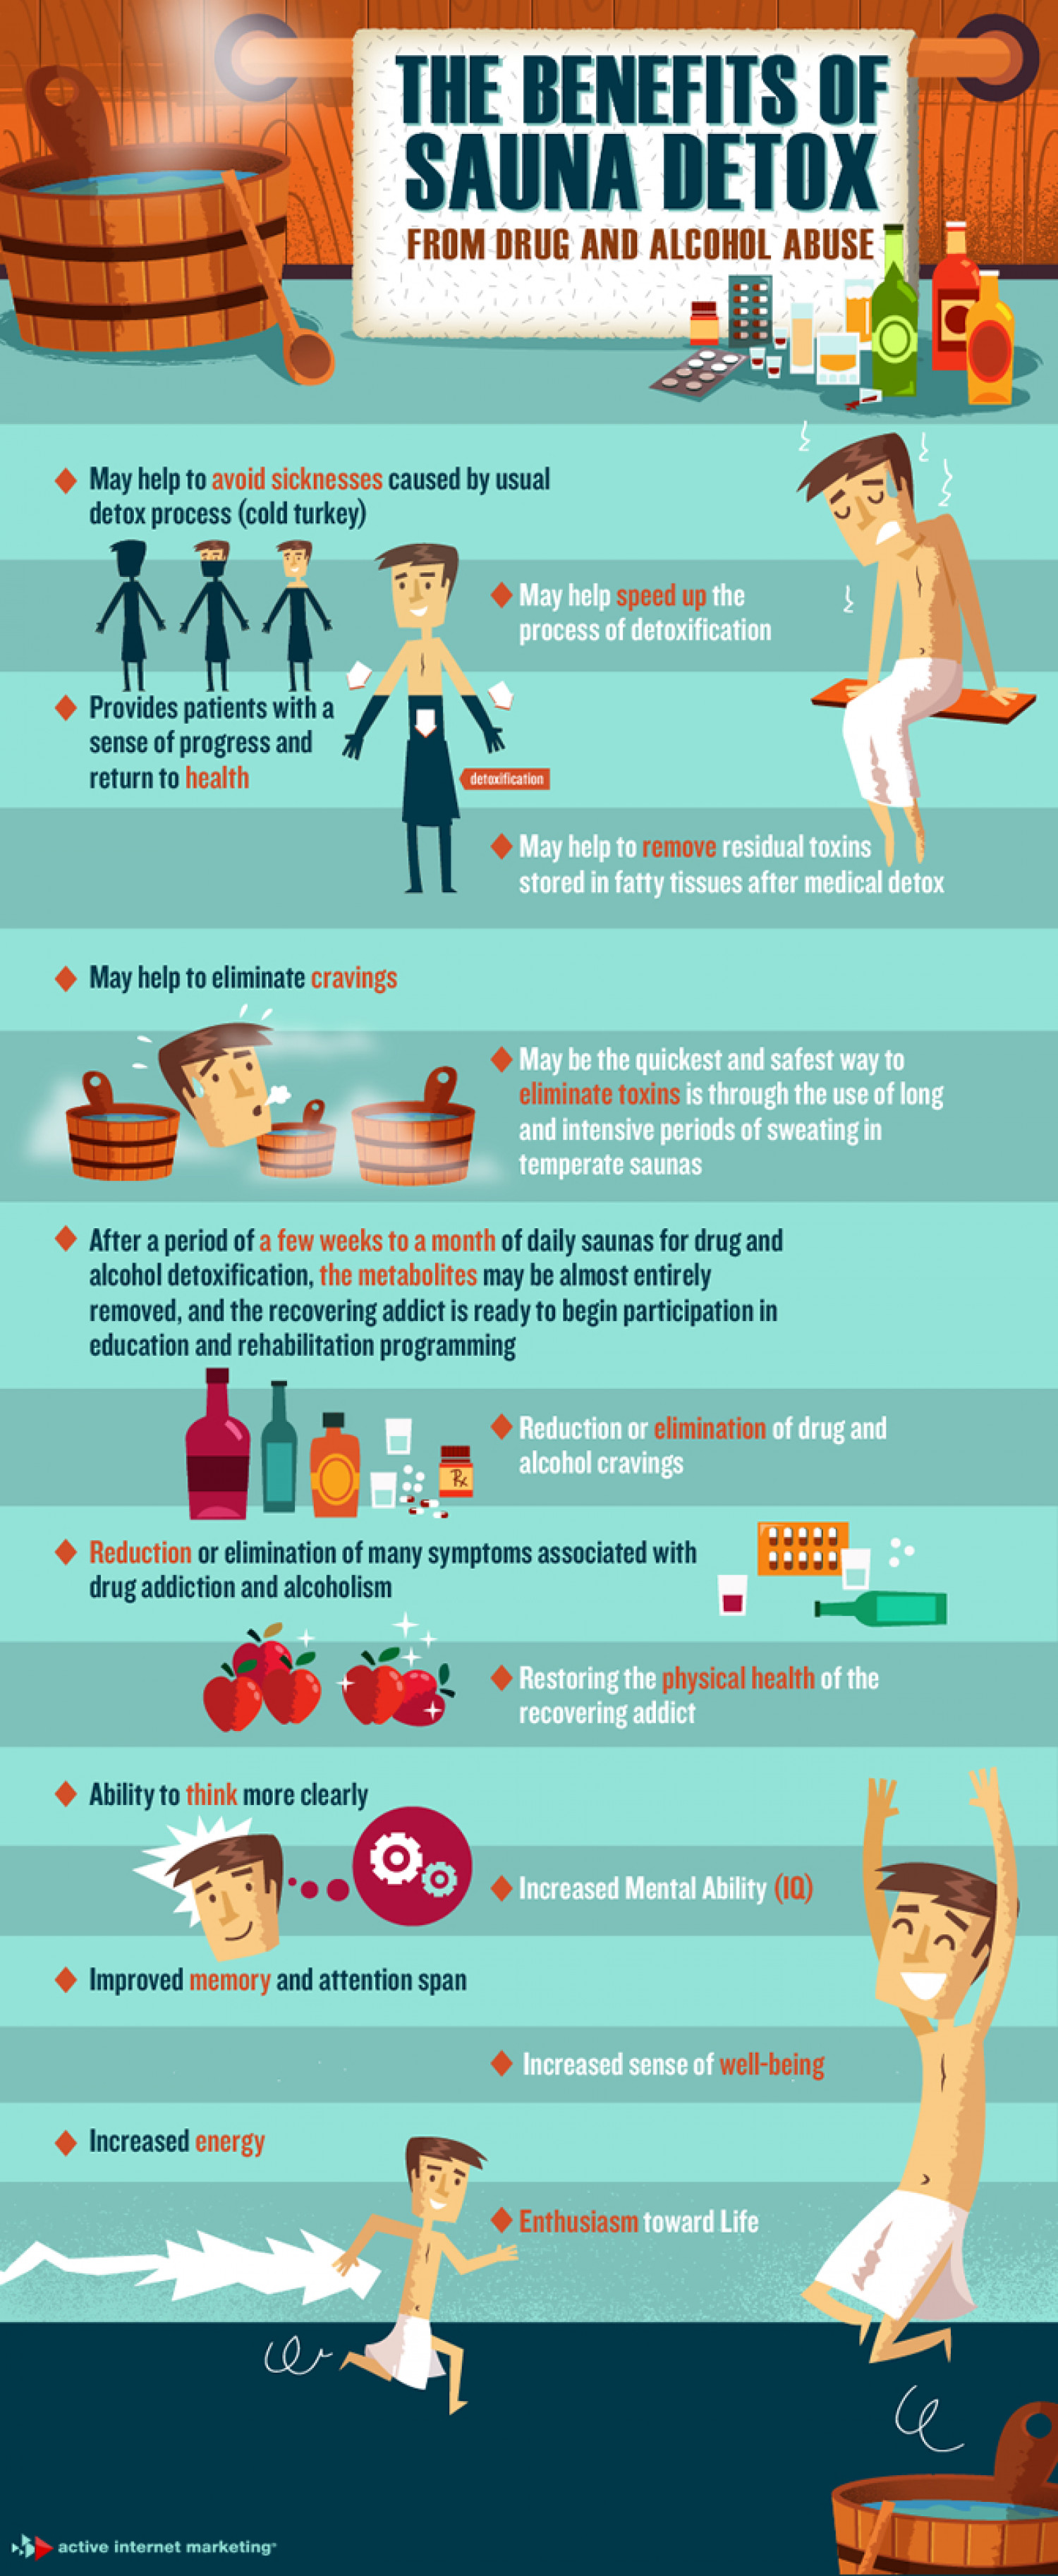 The Benefits of Sauna Detox Infographic